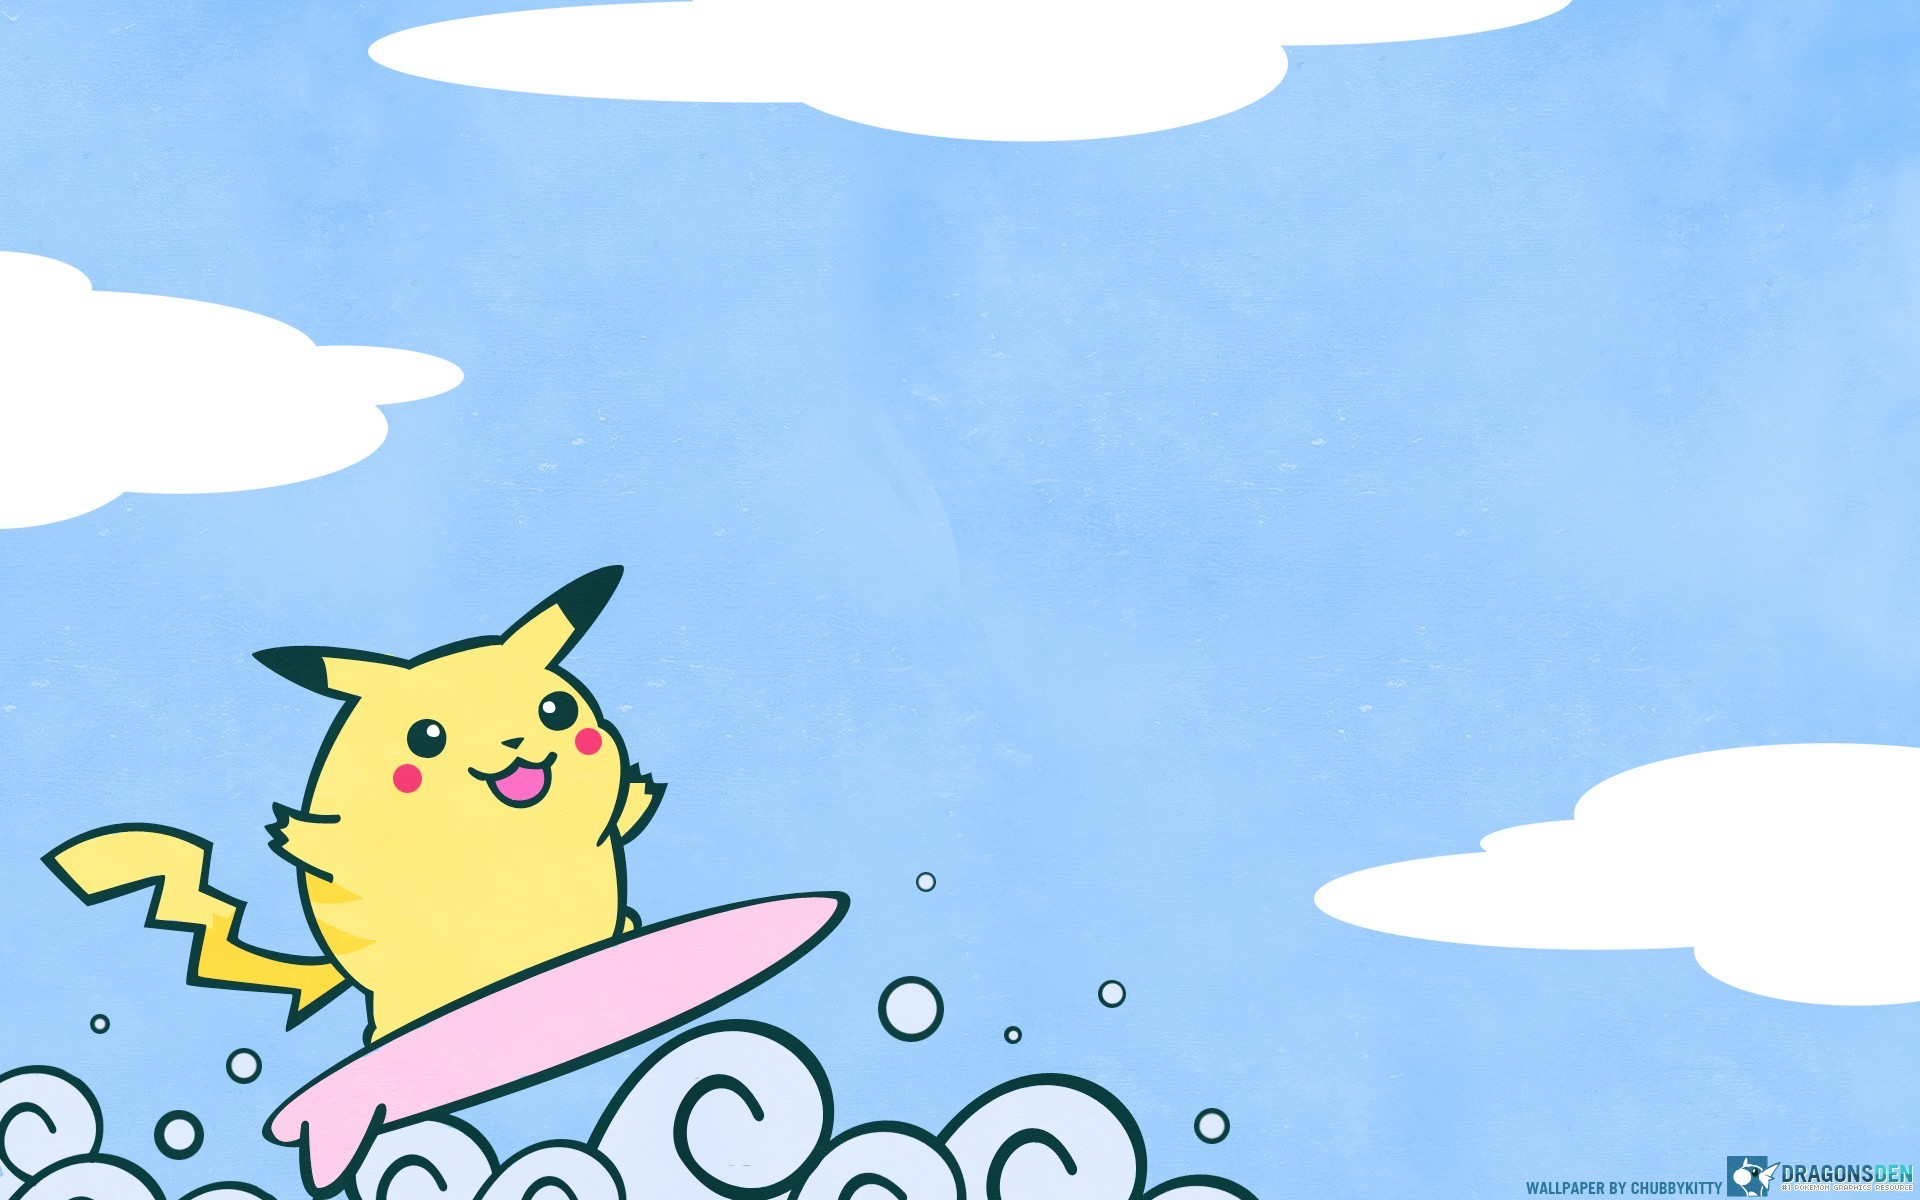 Wallpaper, Surfing Pikachu iPhone Wallpaper, Surfing Pikachu Android .